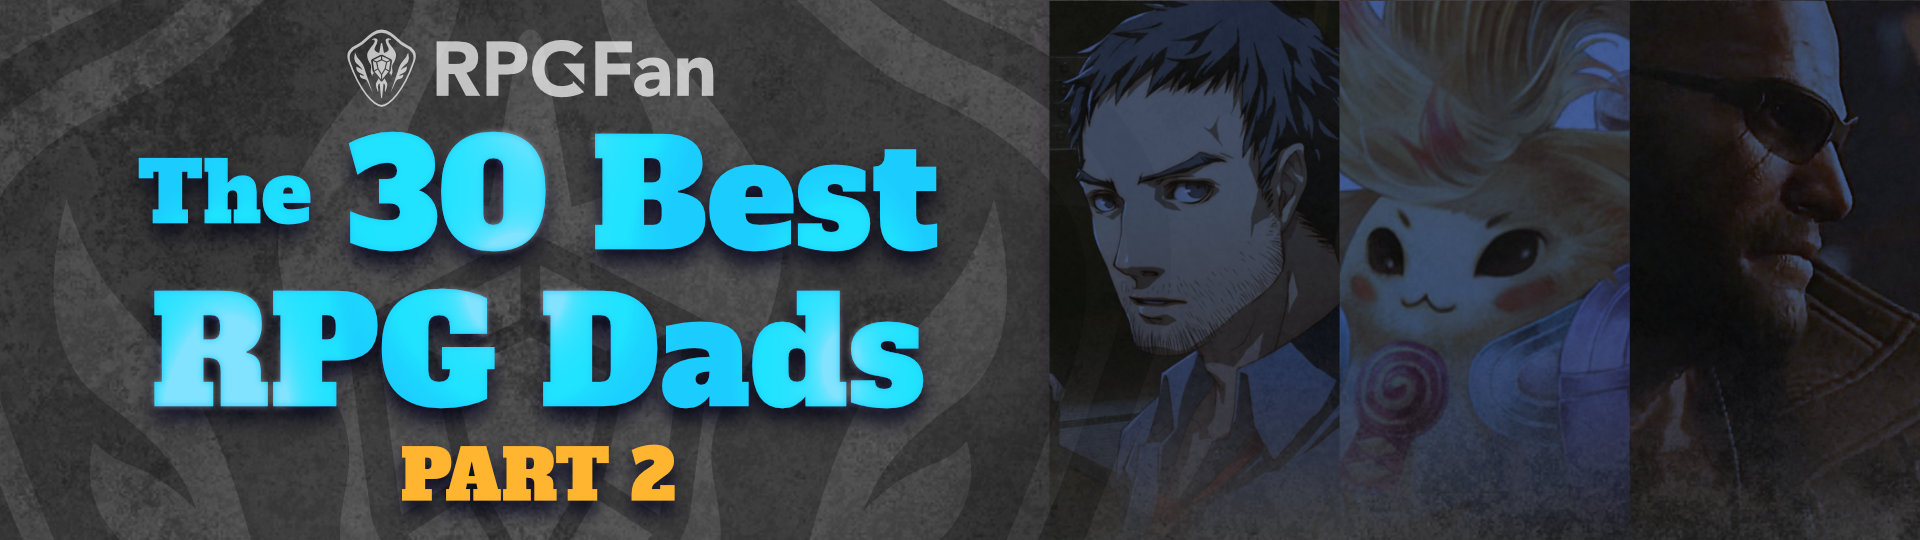 The 30 Best RPG Dads Featured Part 2